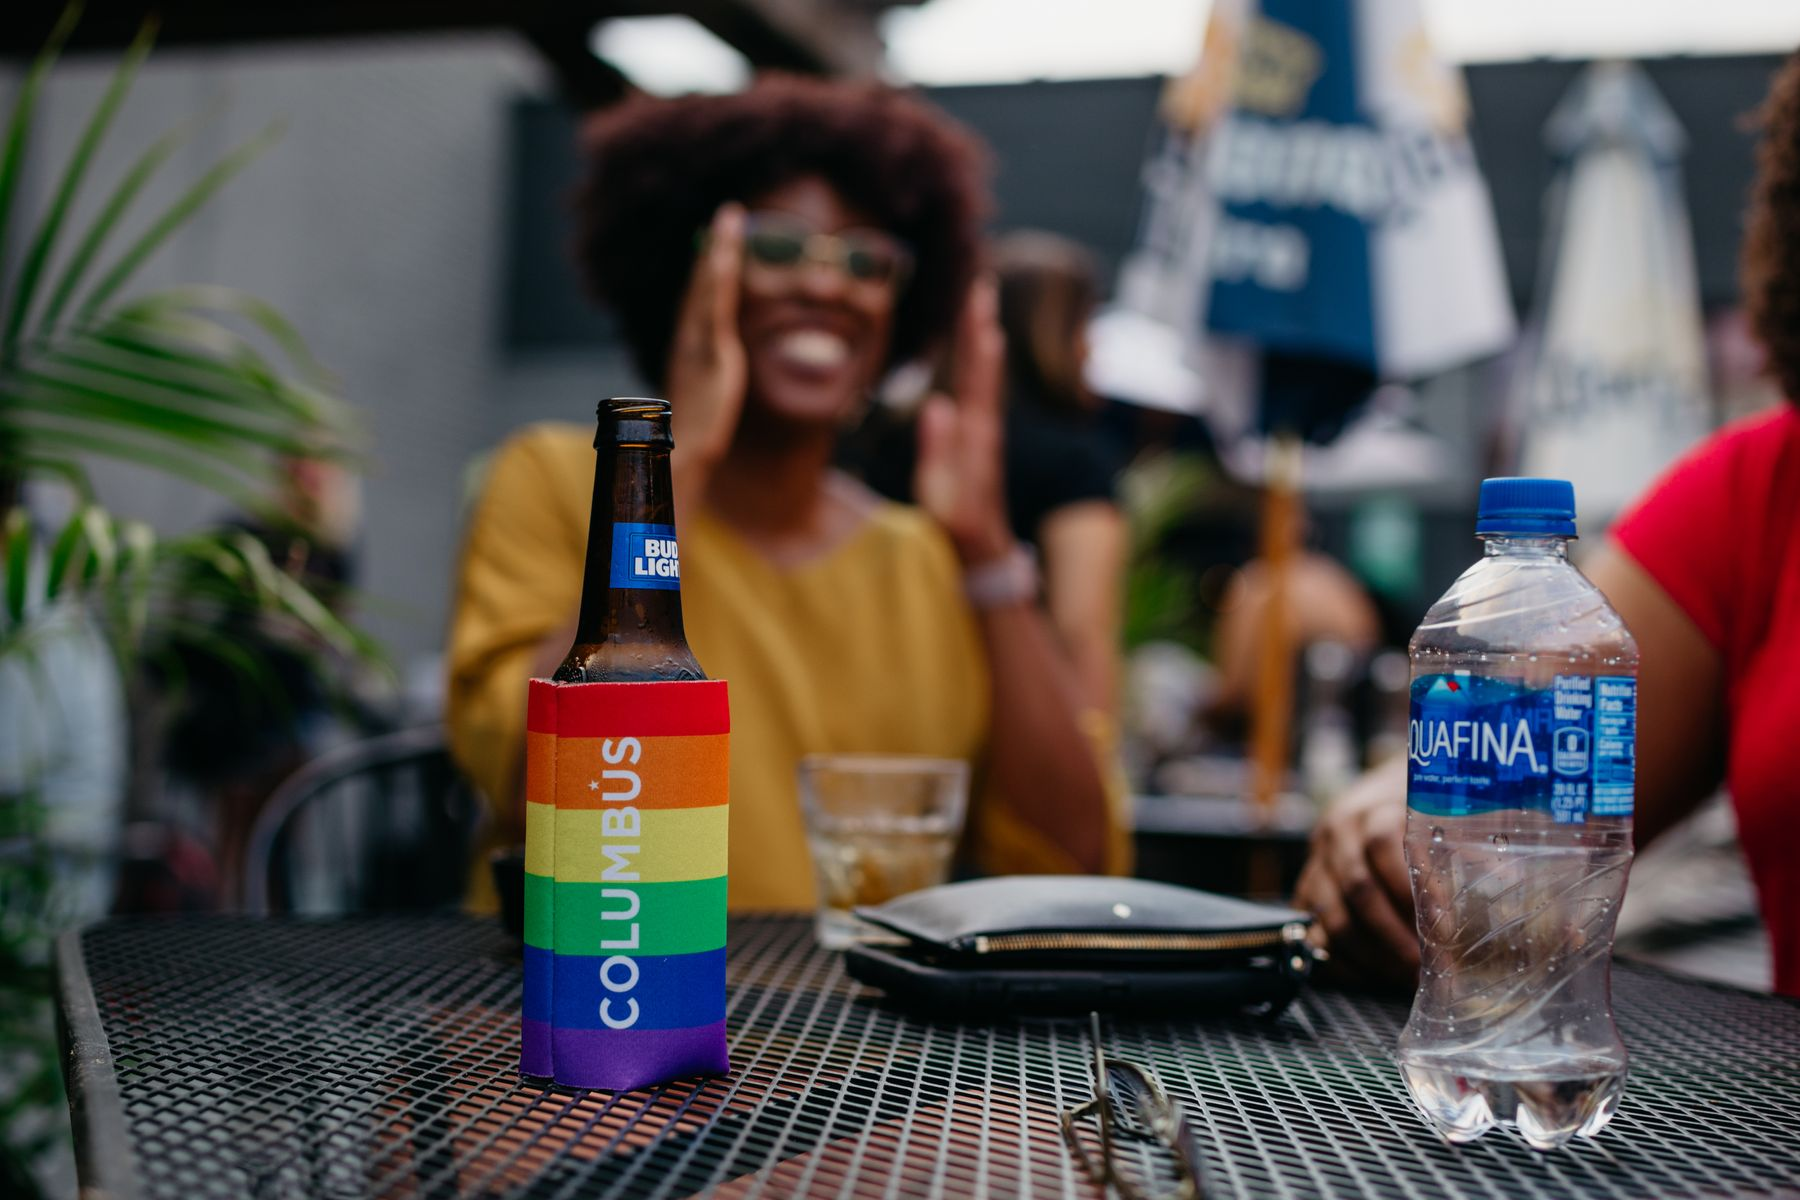 A beer in a rainbow-colored Koozie in focus, with a woman out of focus in the background.